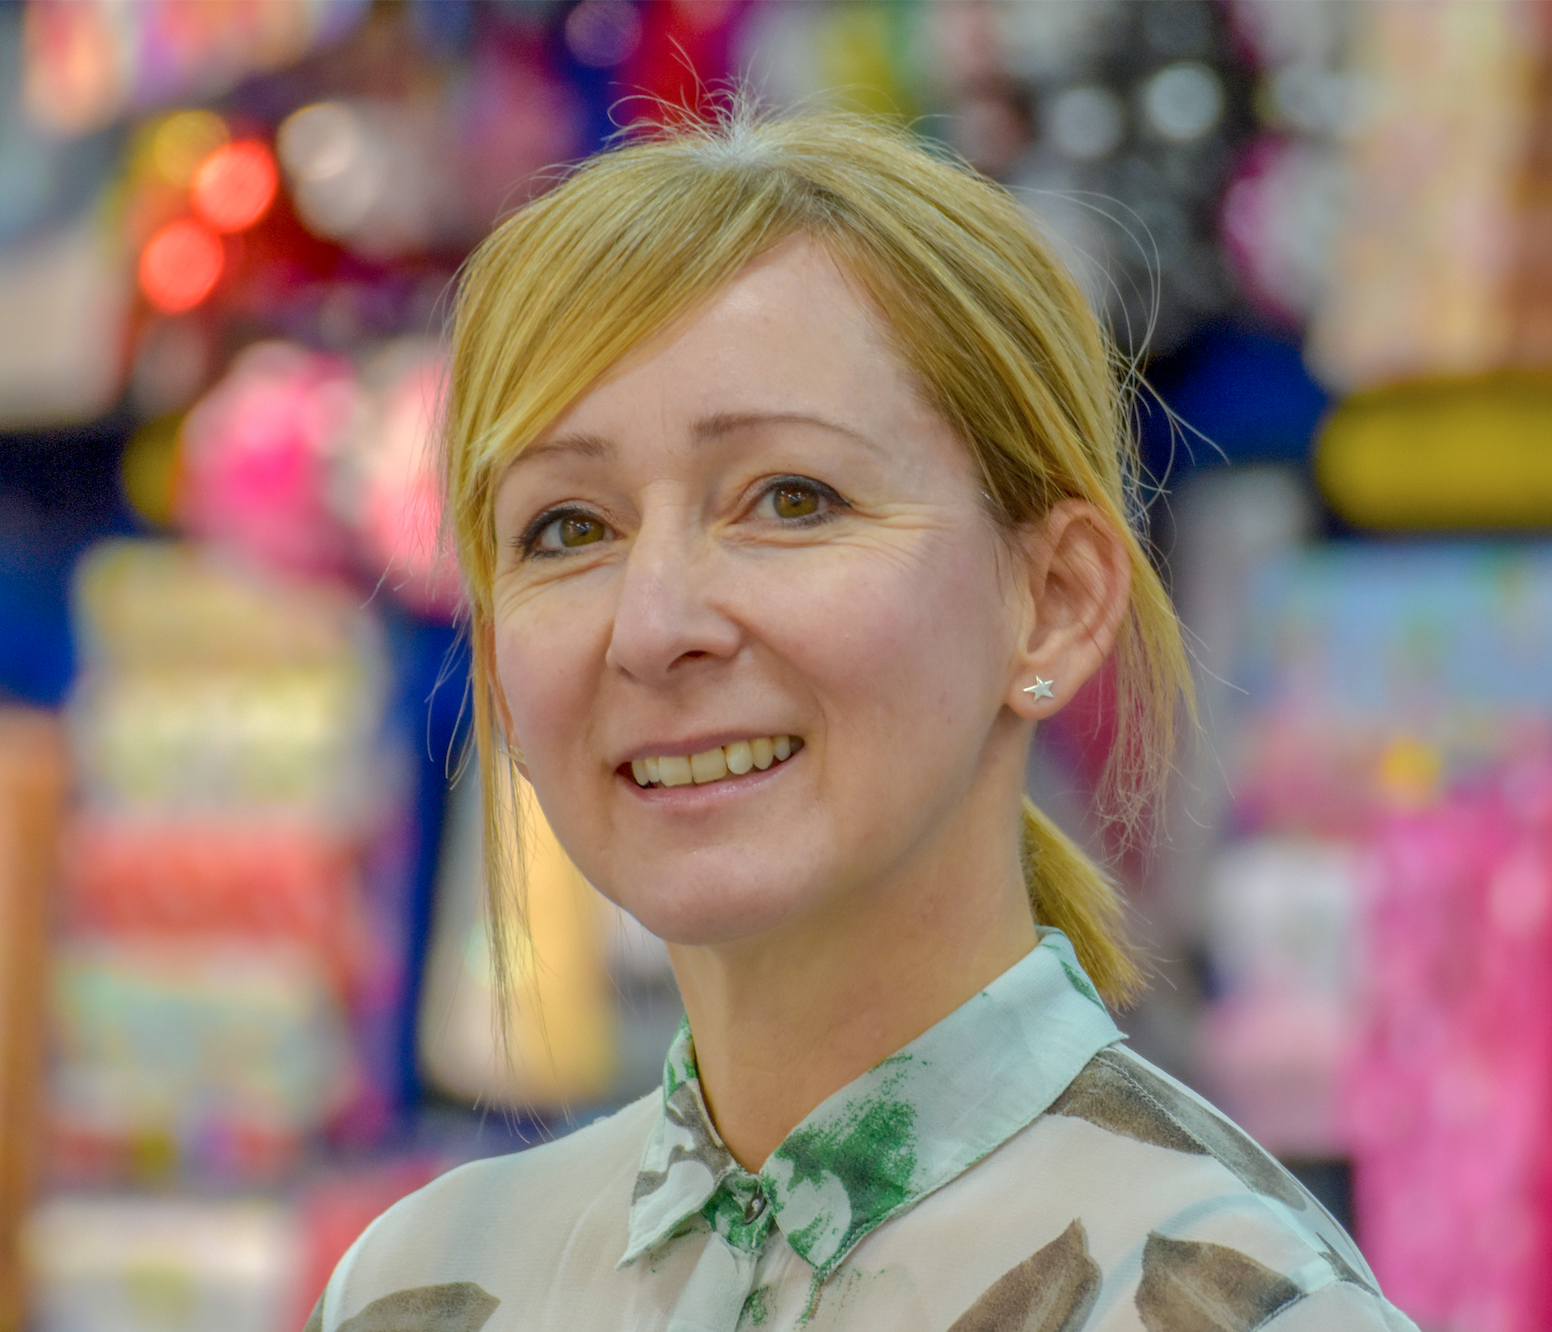 Above: Jo Bennett, studio director of Card Factory will share her views and experiences.